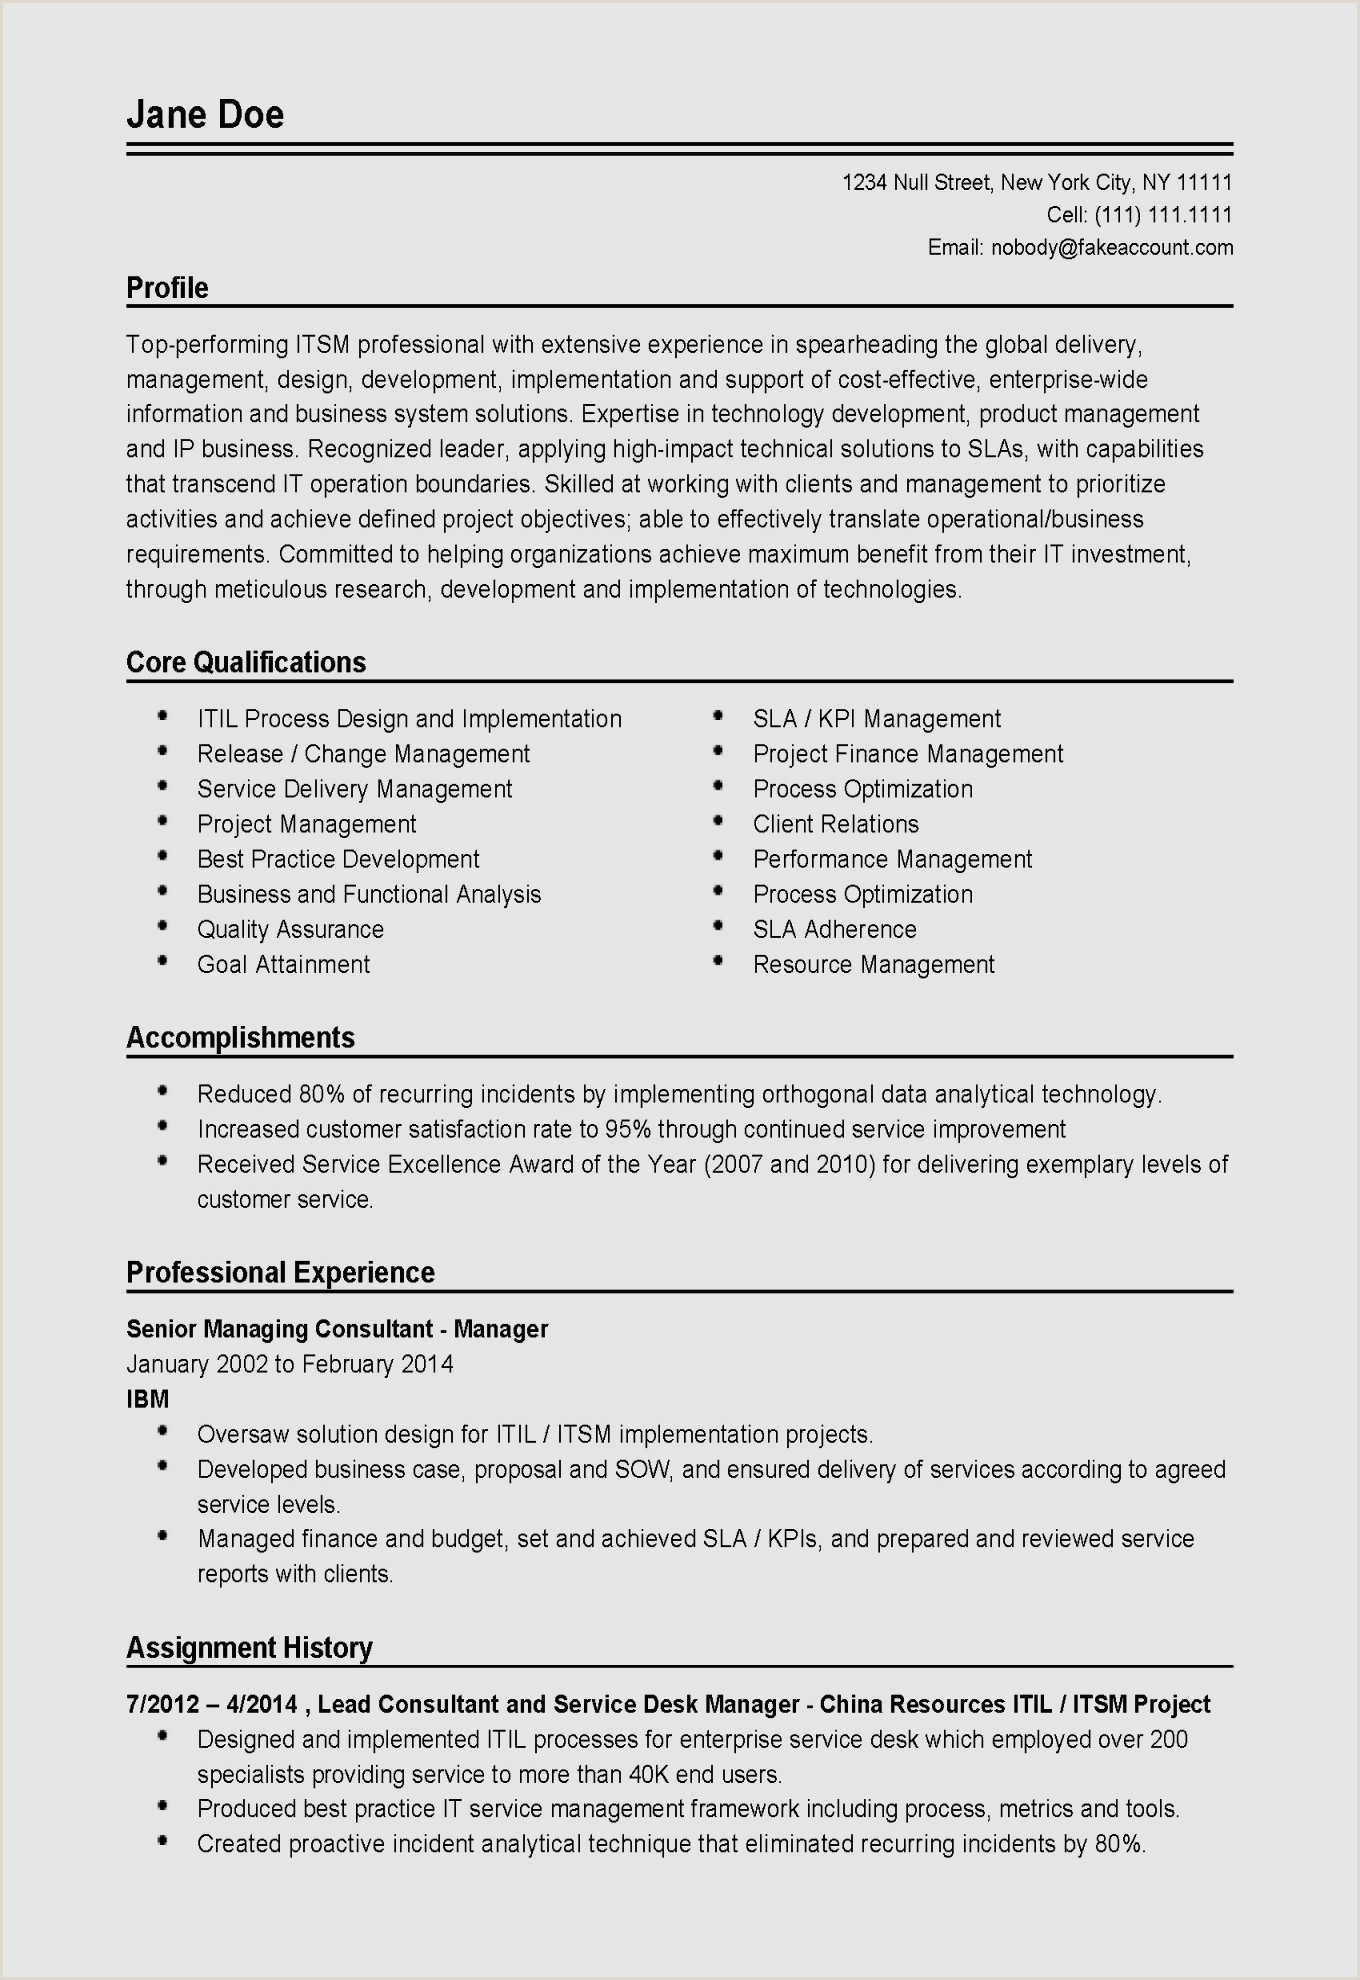 Latest Fresher Cv format Unique Best Professional Resume Templates Template Ideas for